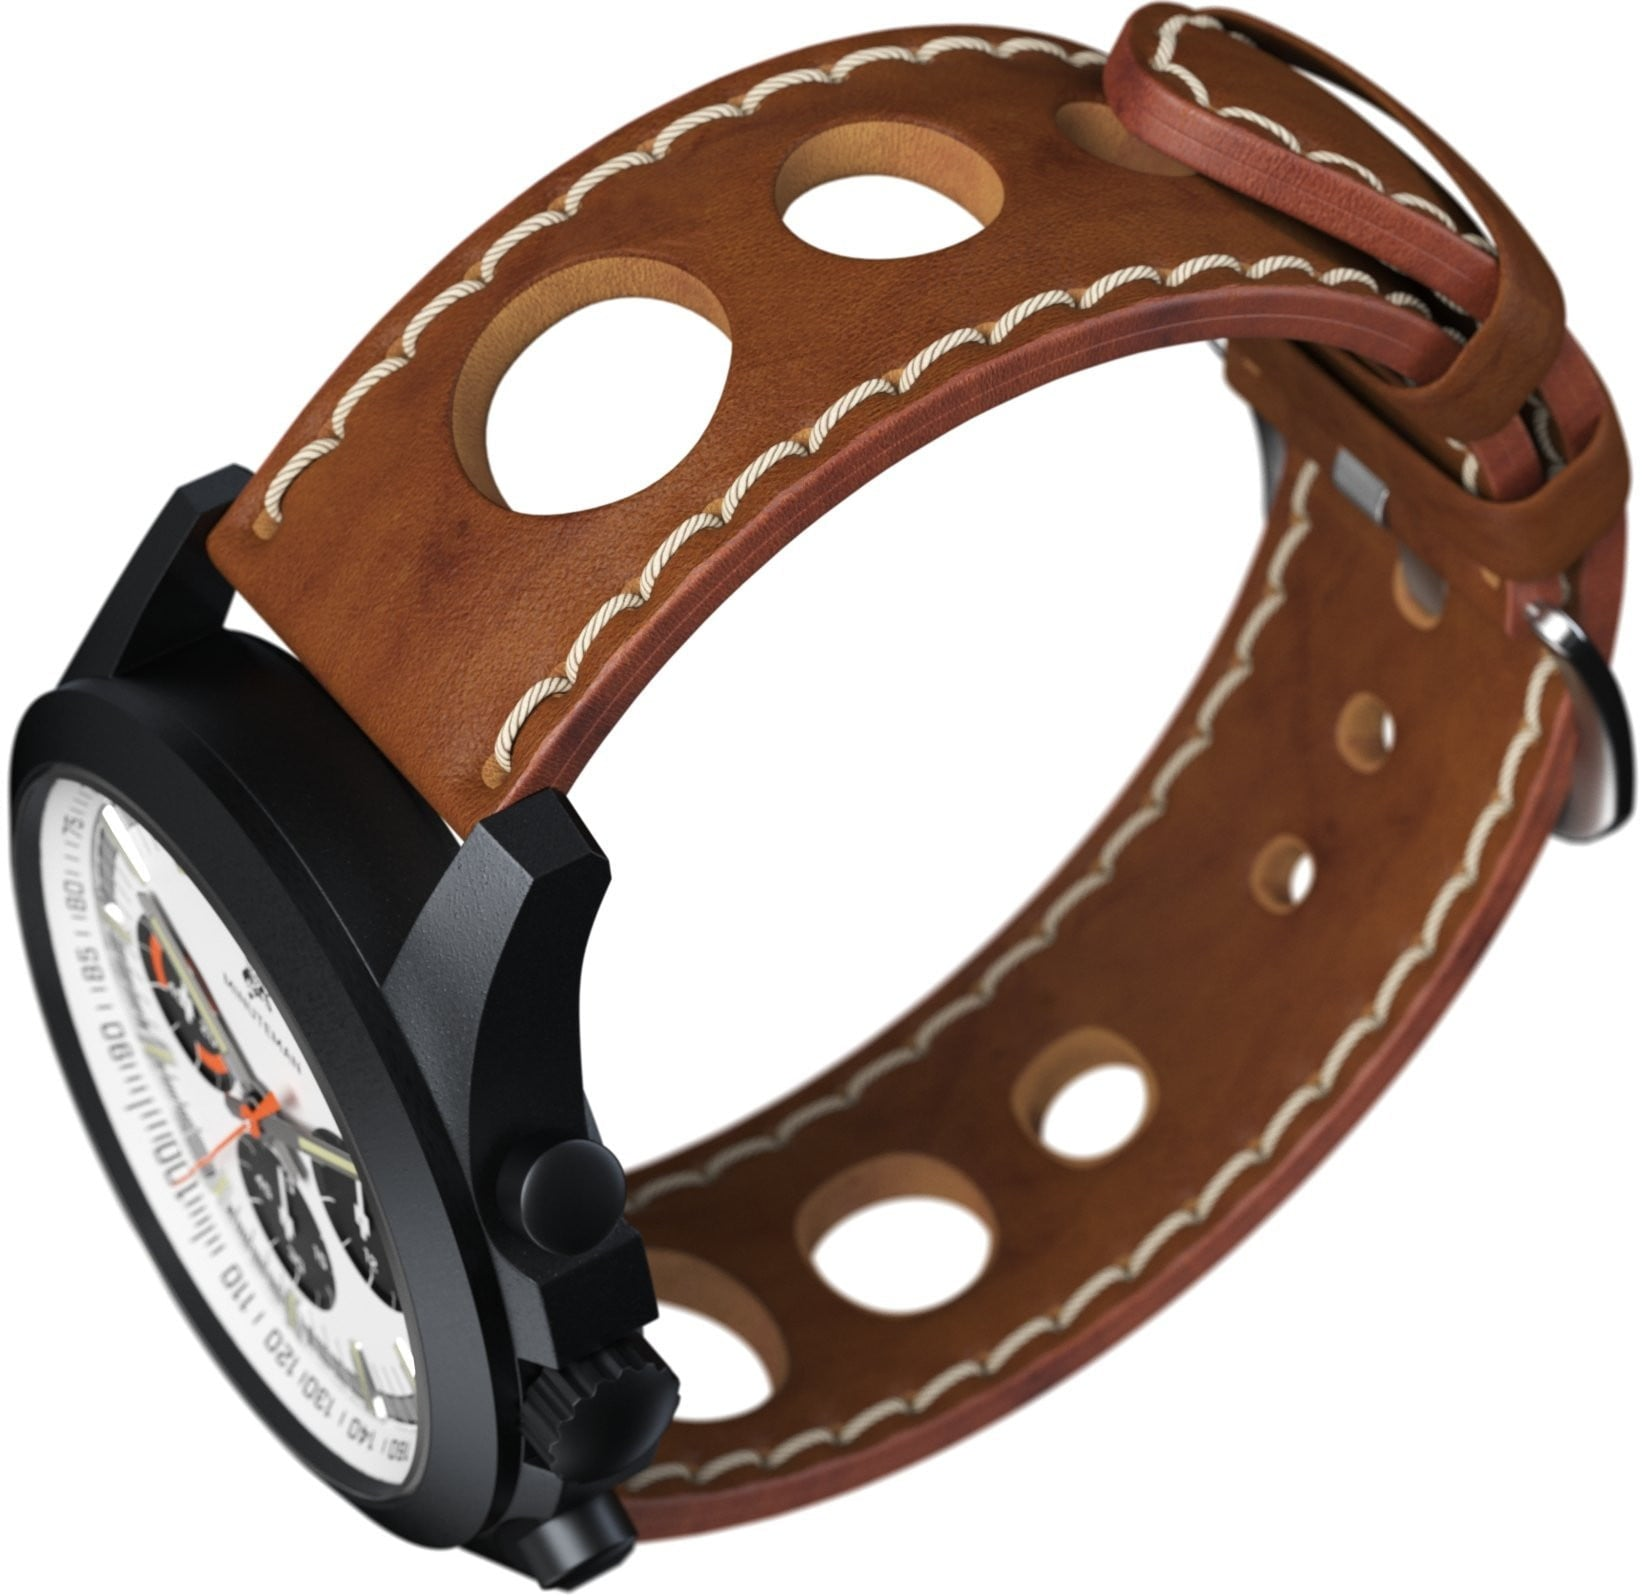 Minuteman Parker Chronograph Watch Brown Leather Strap DLC Panda Dial (Pre Order) - minutemanwatches